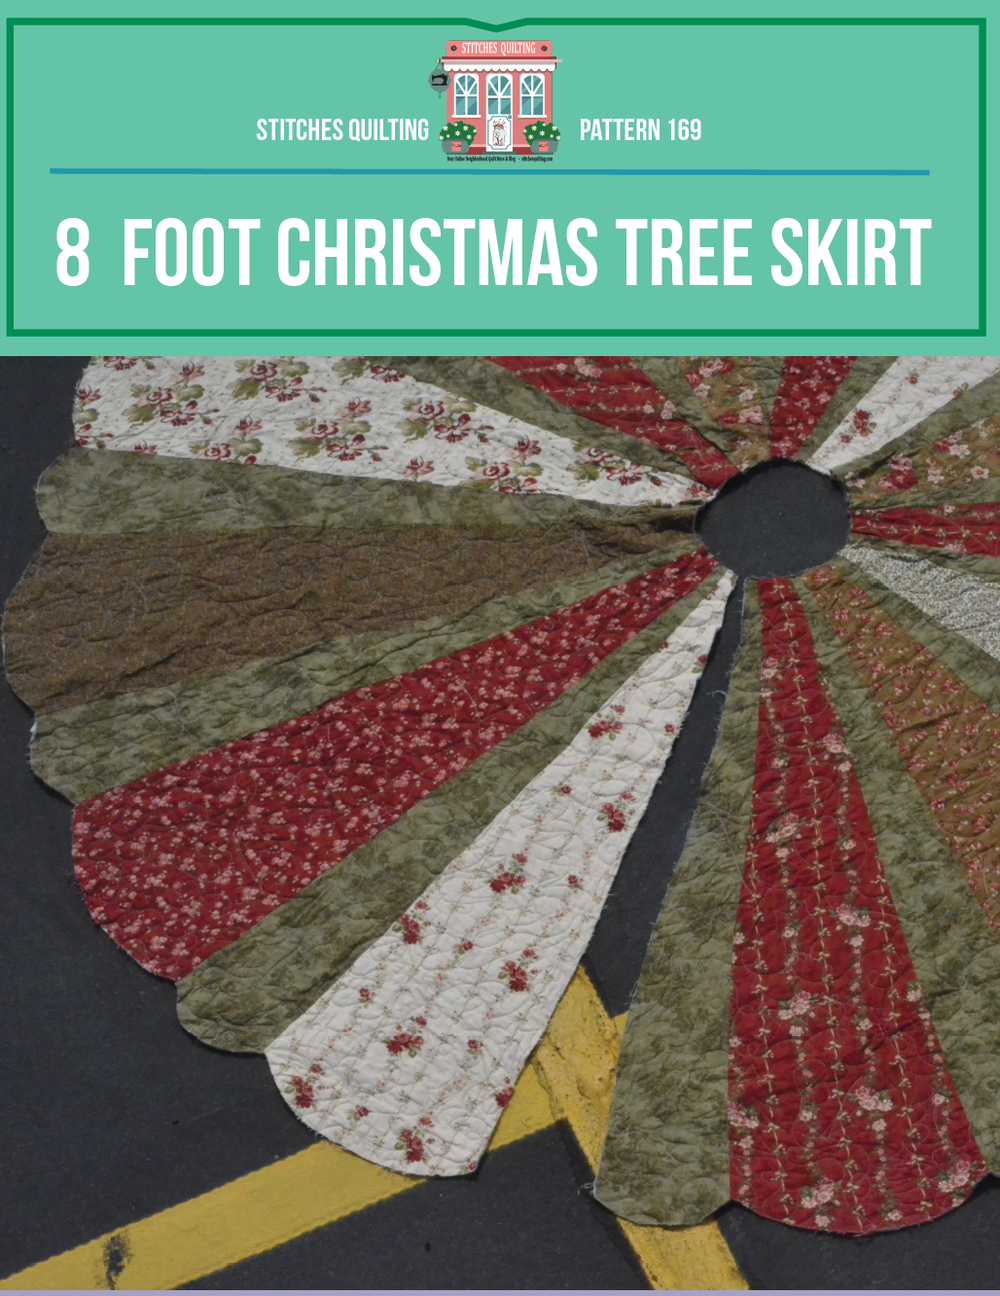 Stitches Quilting - 8' Giant Tree Skirt.png